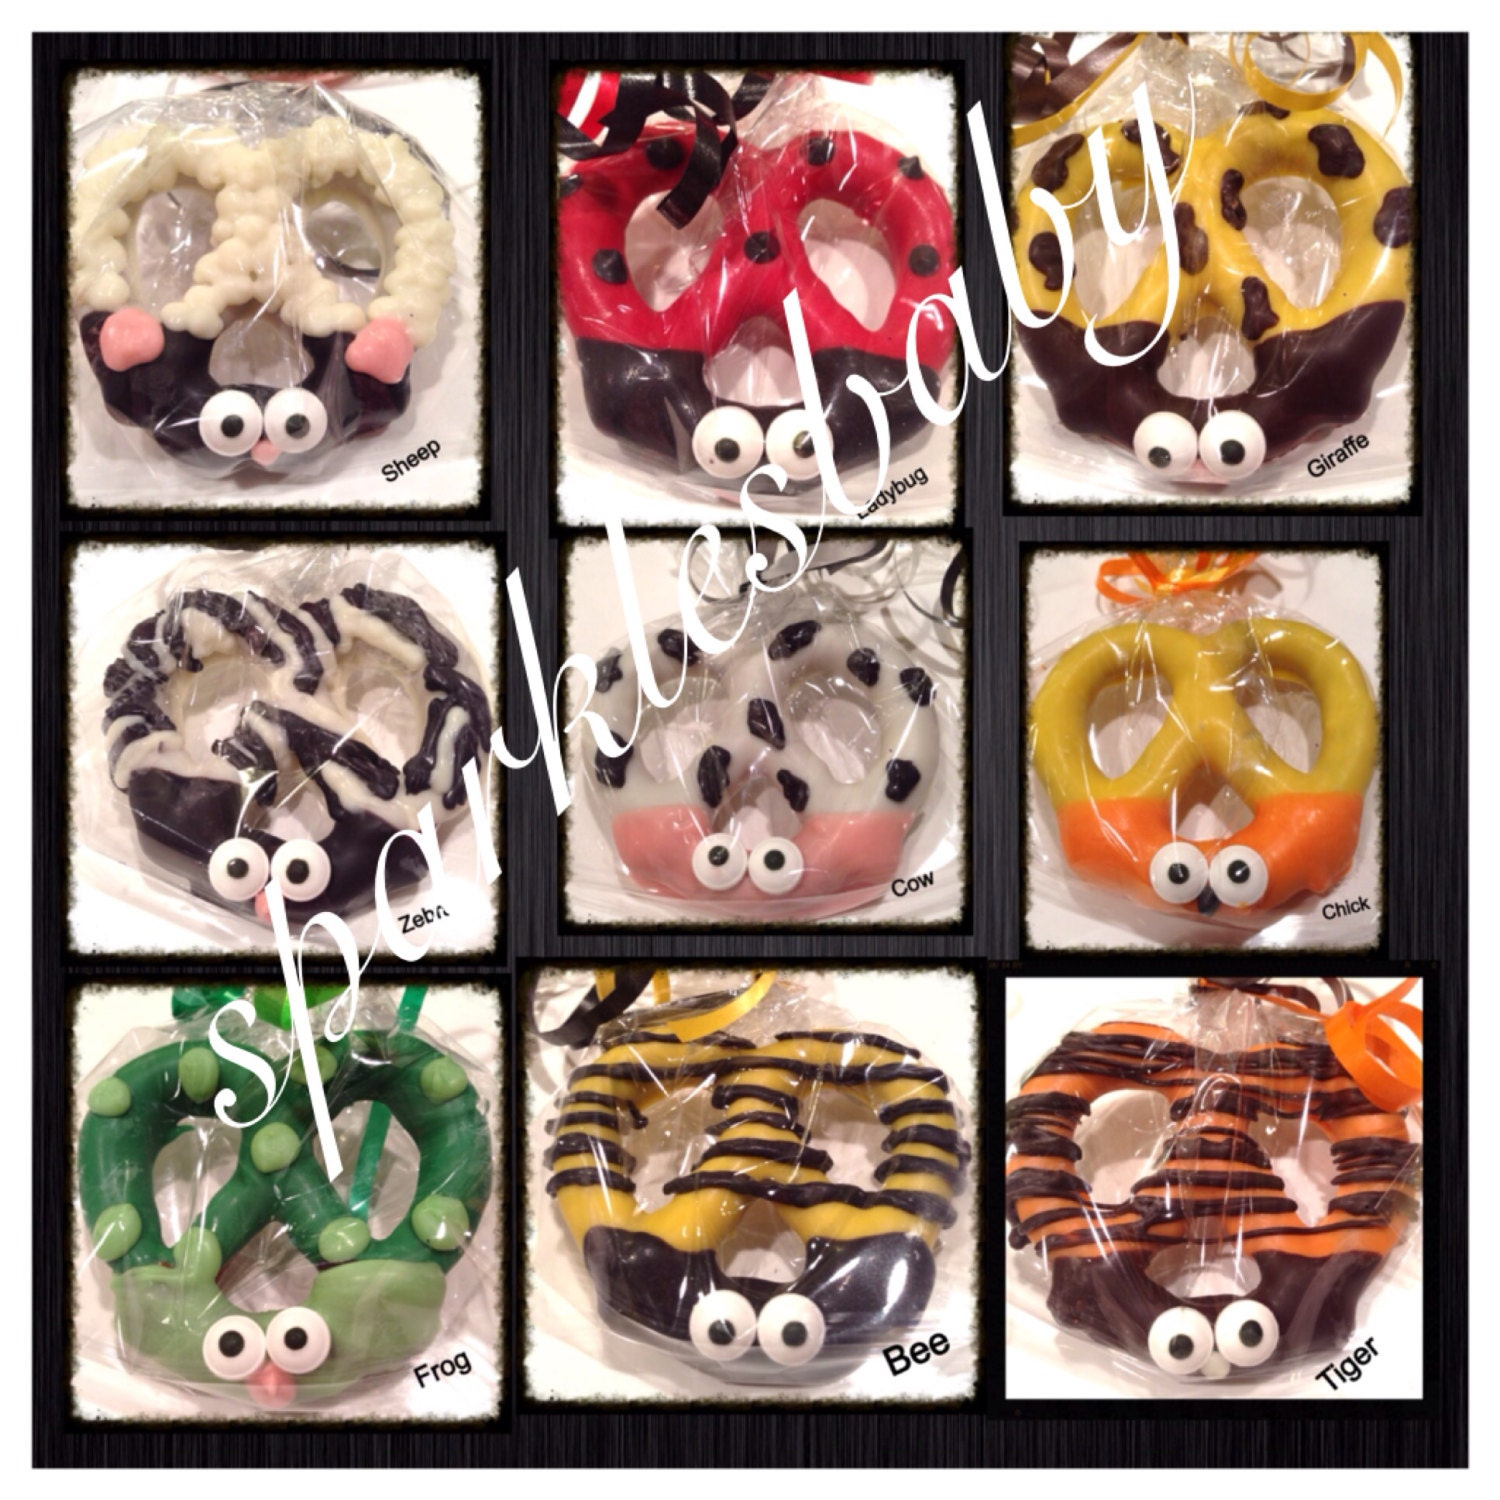 Ladybug Cow Bumble Bee Sheep Zebra Giraffe Chick Frog Tiger Chocolate Covered Pretzels Centerpiece Or Candy Table Set Of 12